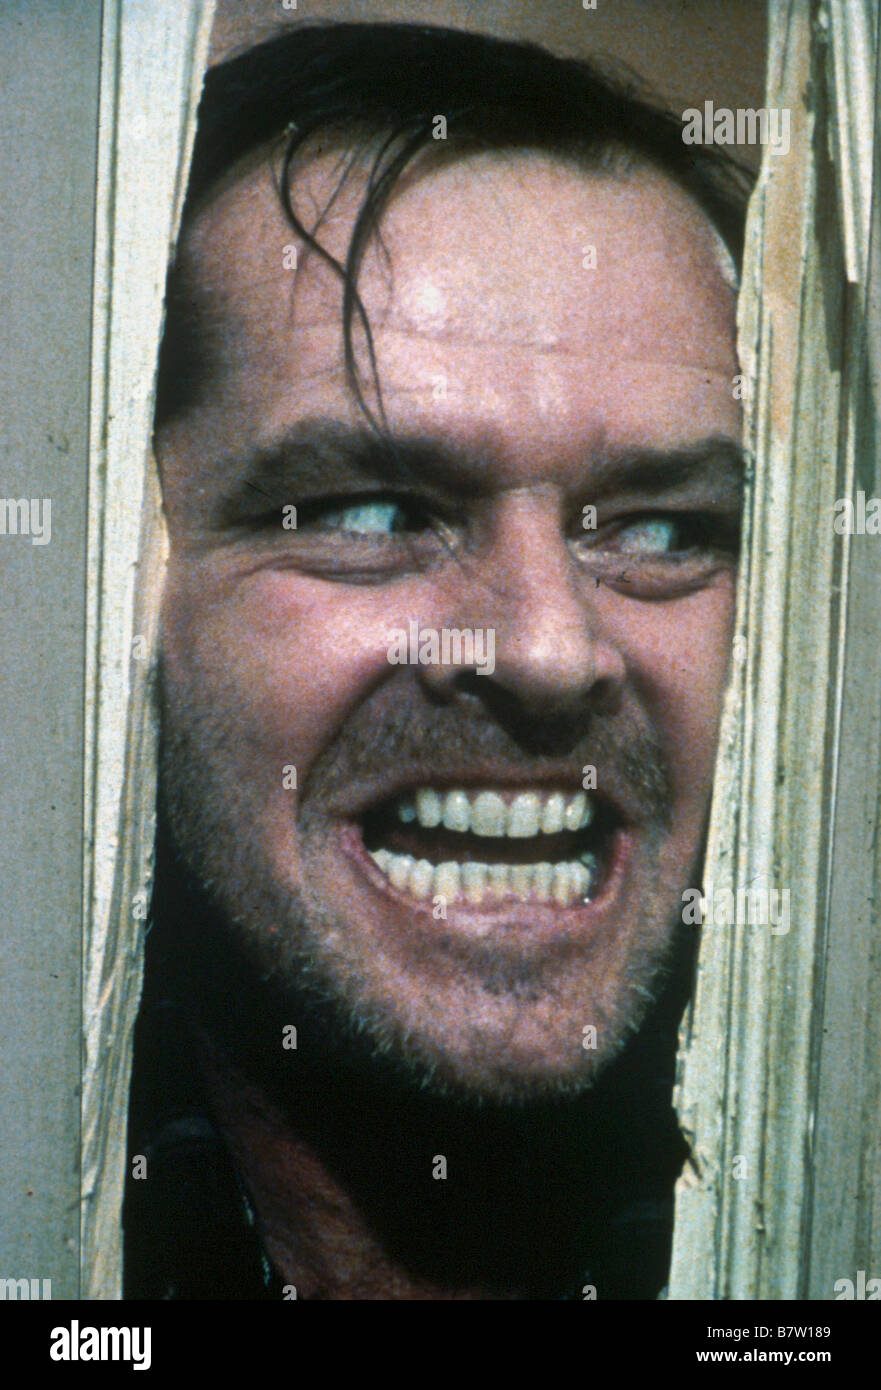 The Shining Year: 1980 UK / USA Jack Nicholson  Director: Stanley Kubrick - Stock Image